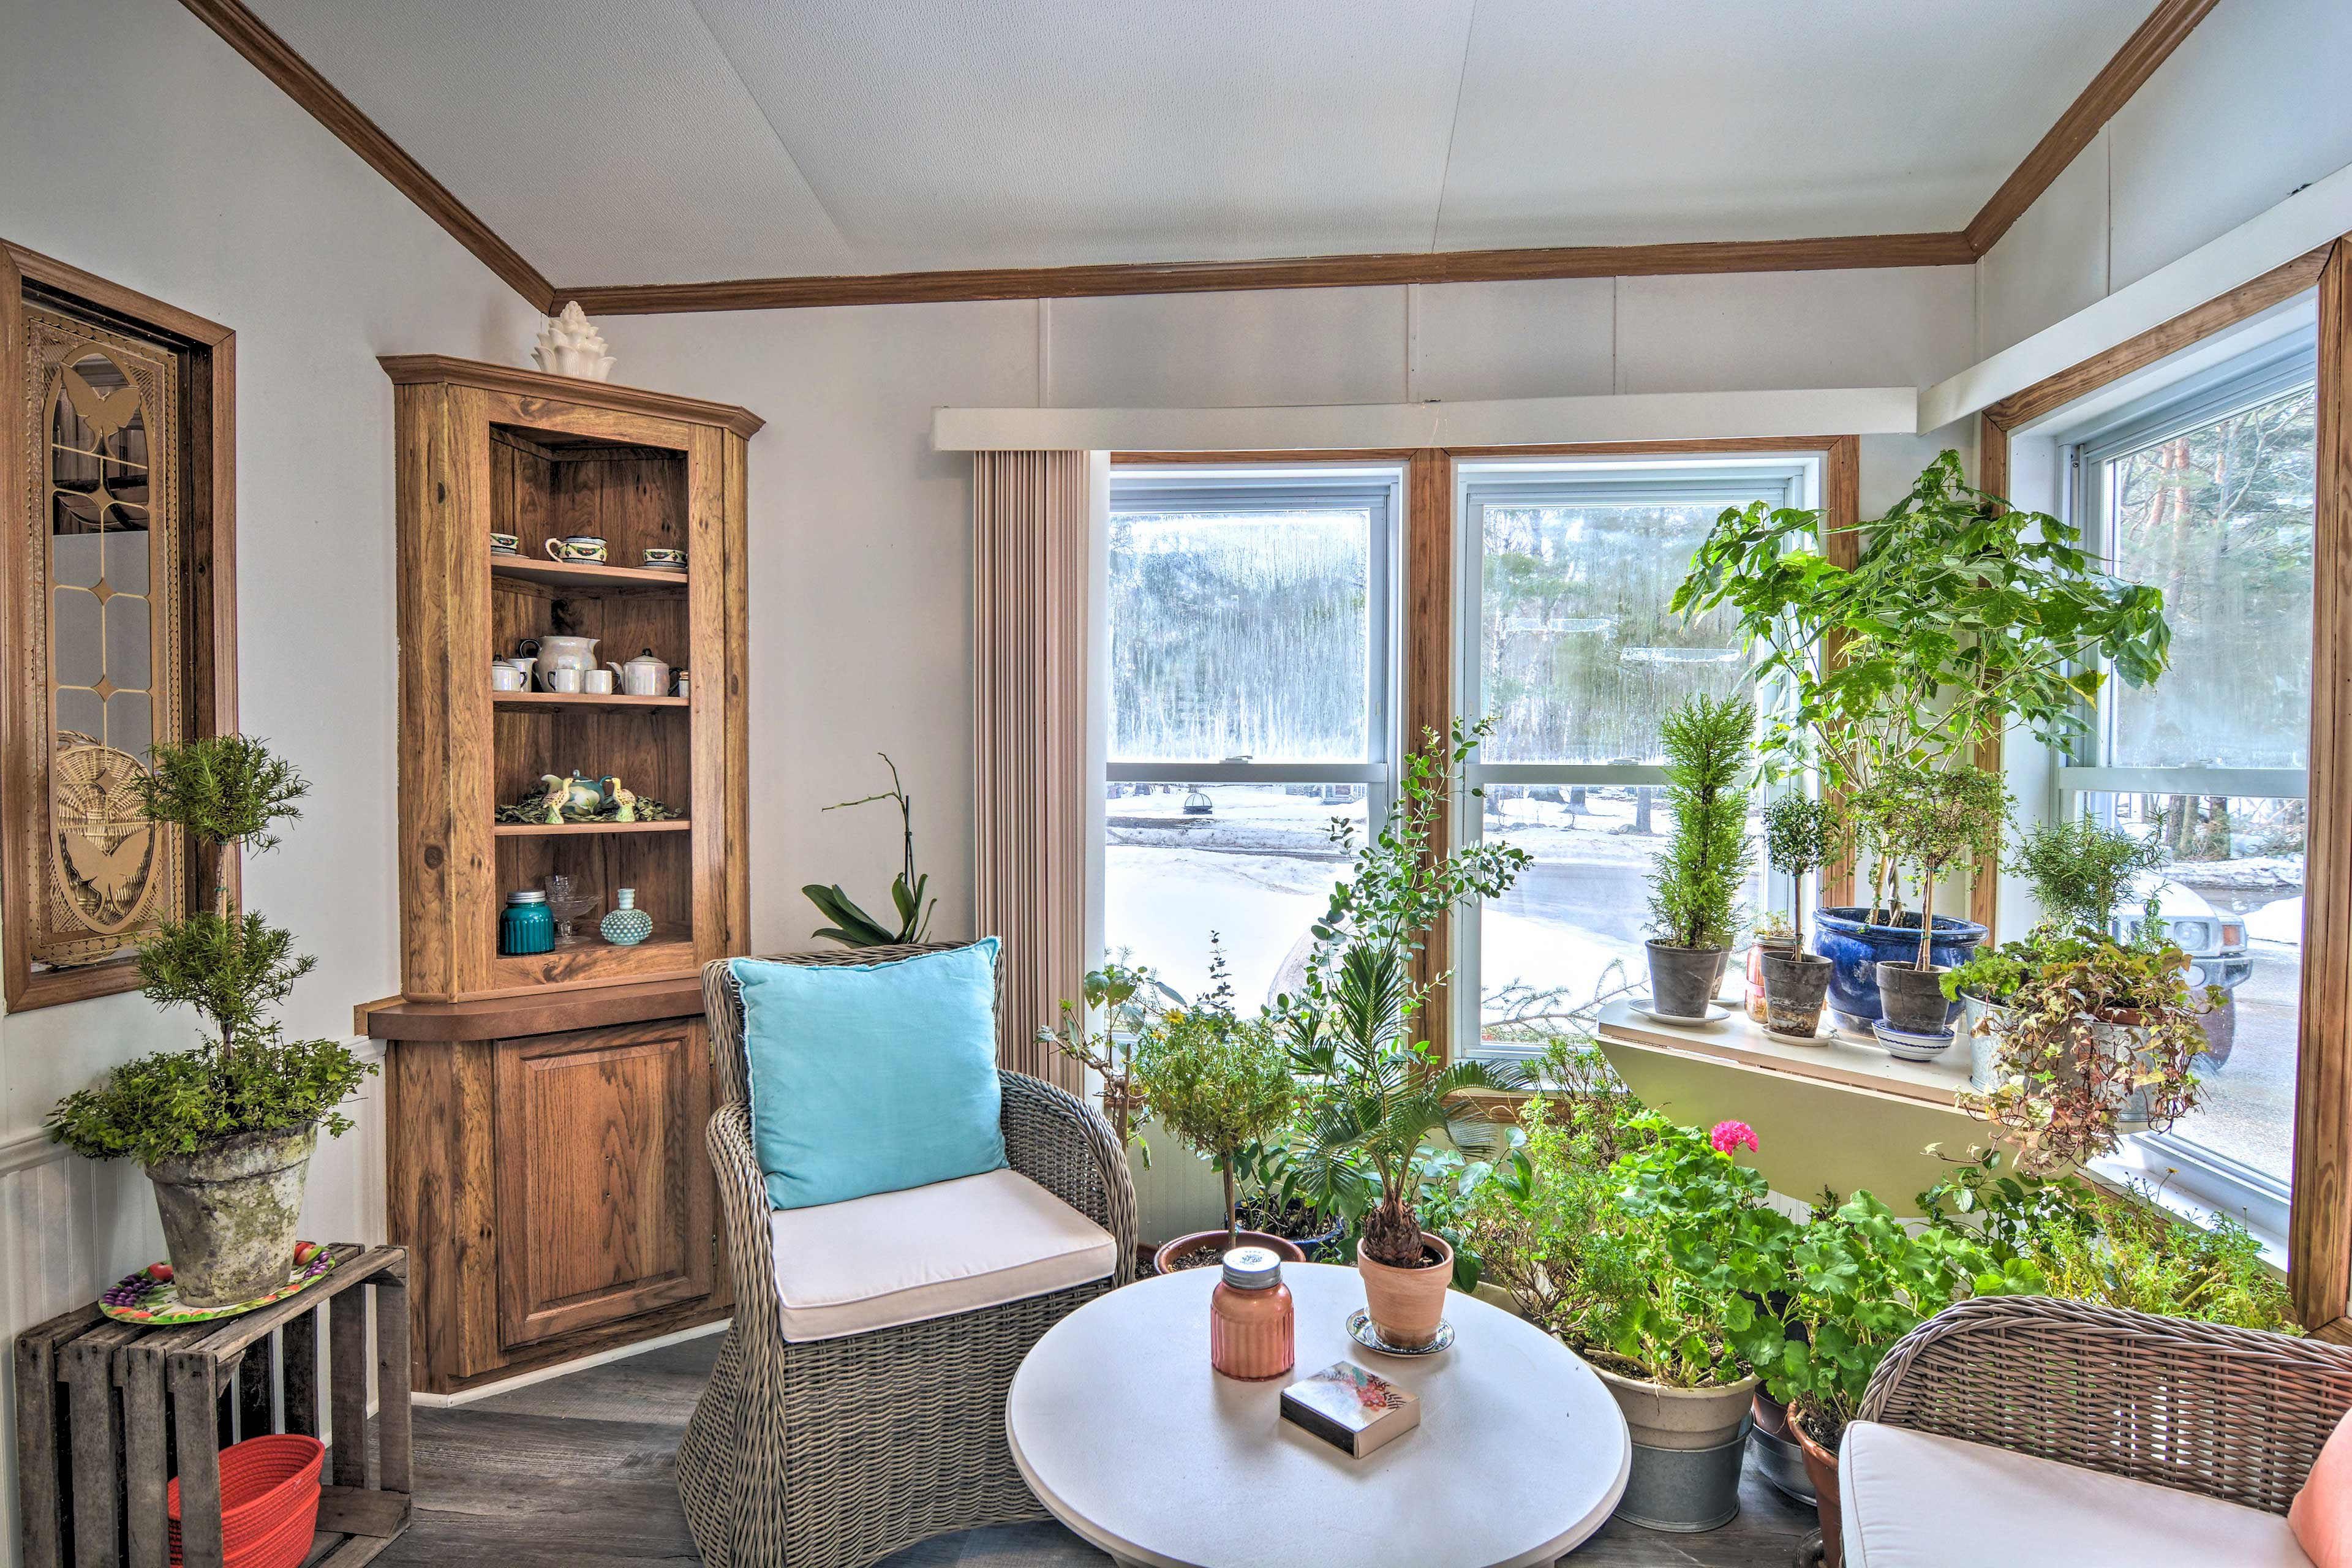 Catch up on some light reading in the light-filled sunroom.